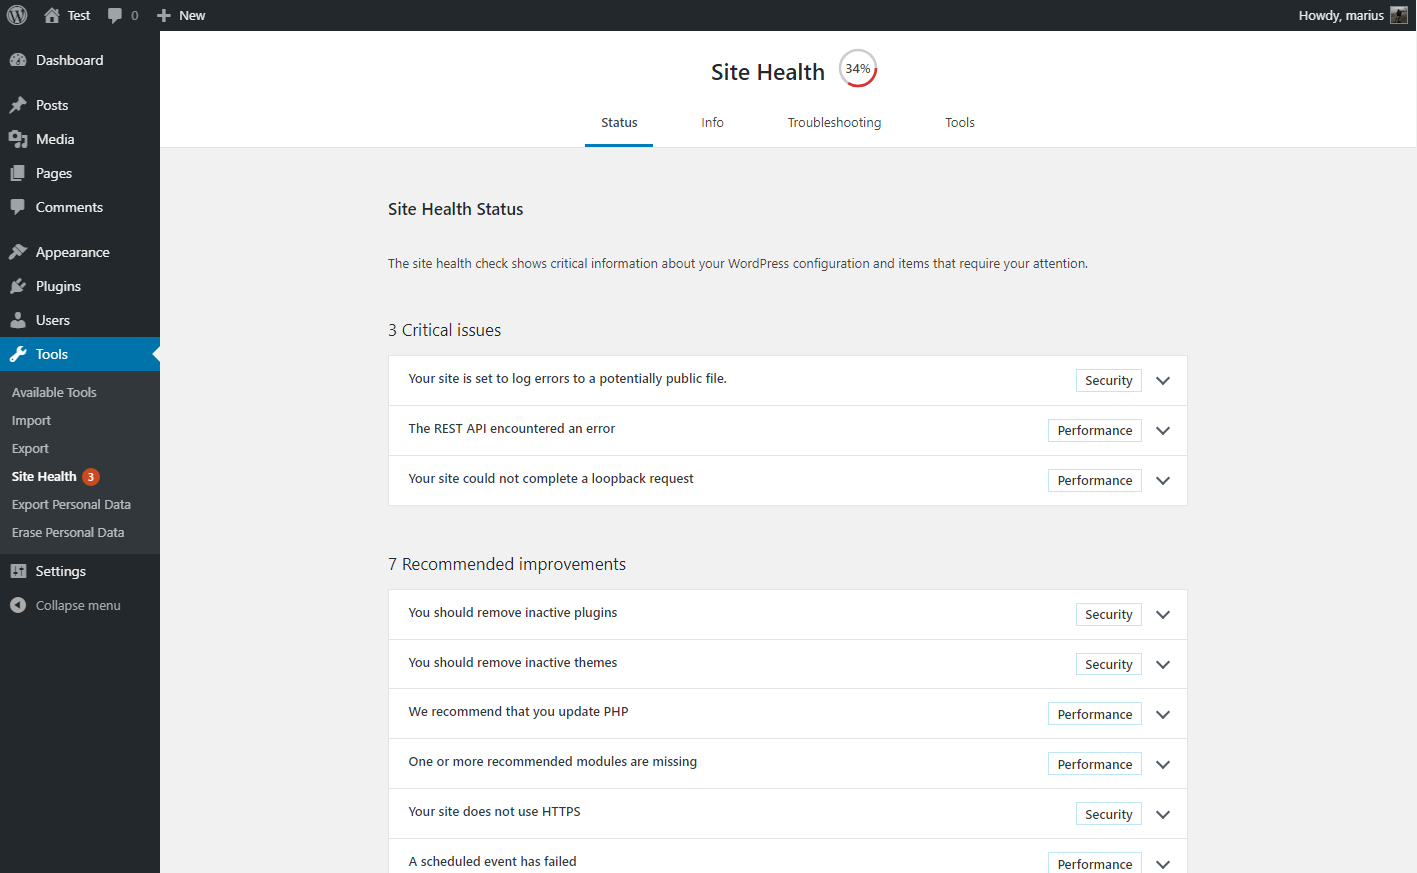 Health Check & Troubleshooting Download Free Wordpress Plugin 3